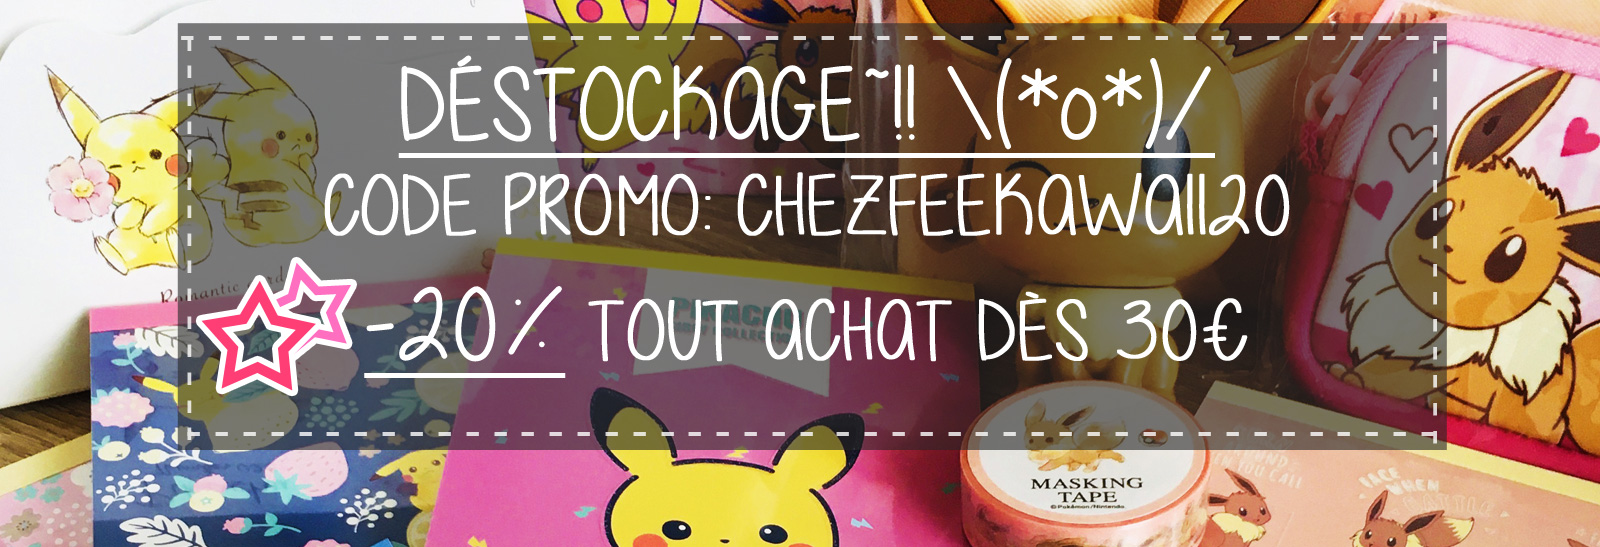 chezfee boutique kawaii slide show pokemon code promo slideshow destockage